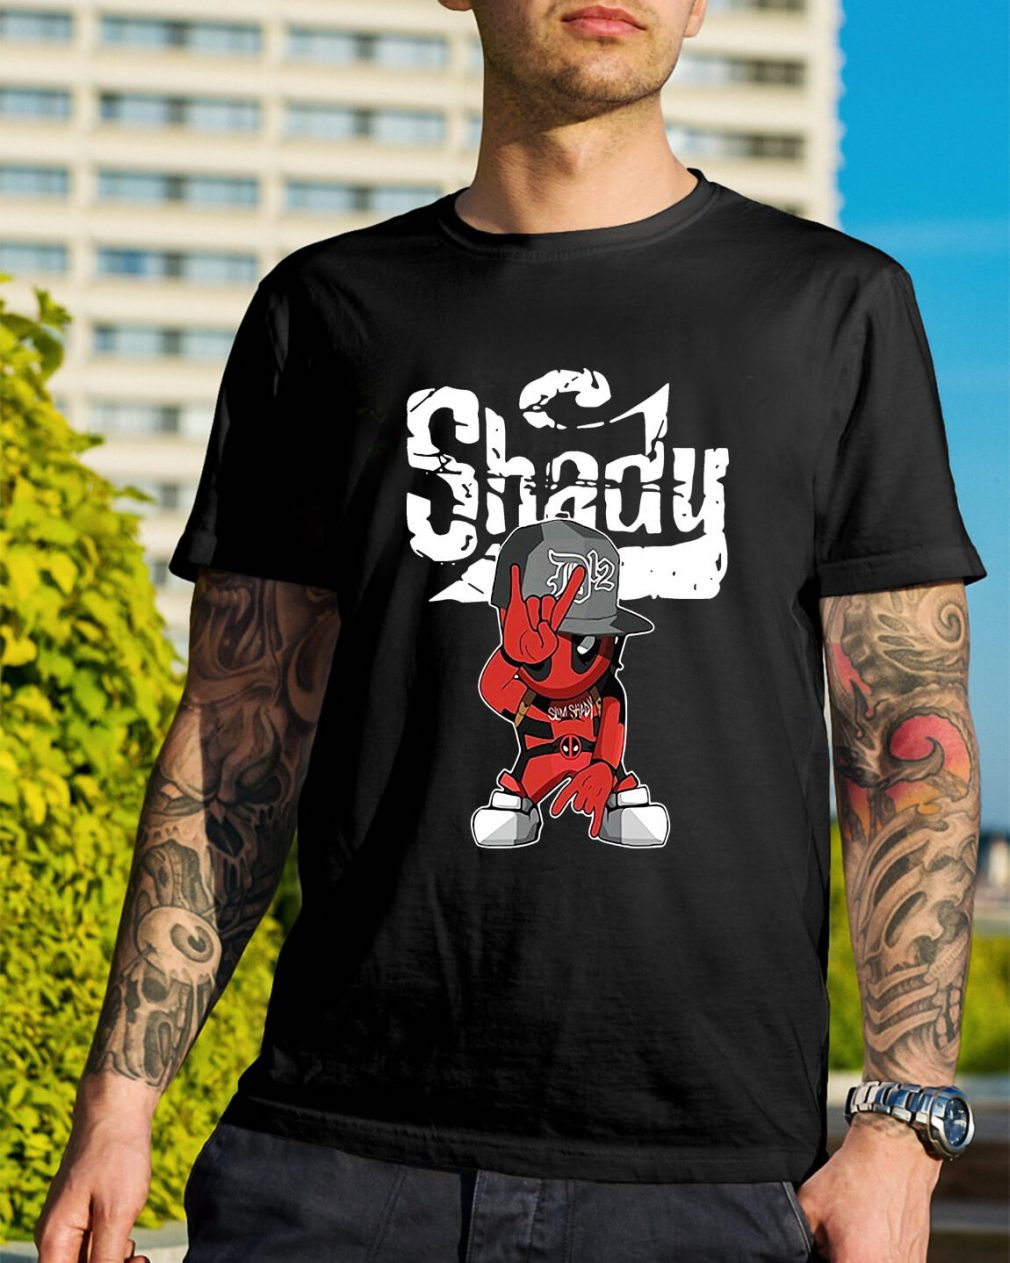 Baby Deadpool slim Shady shirt